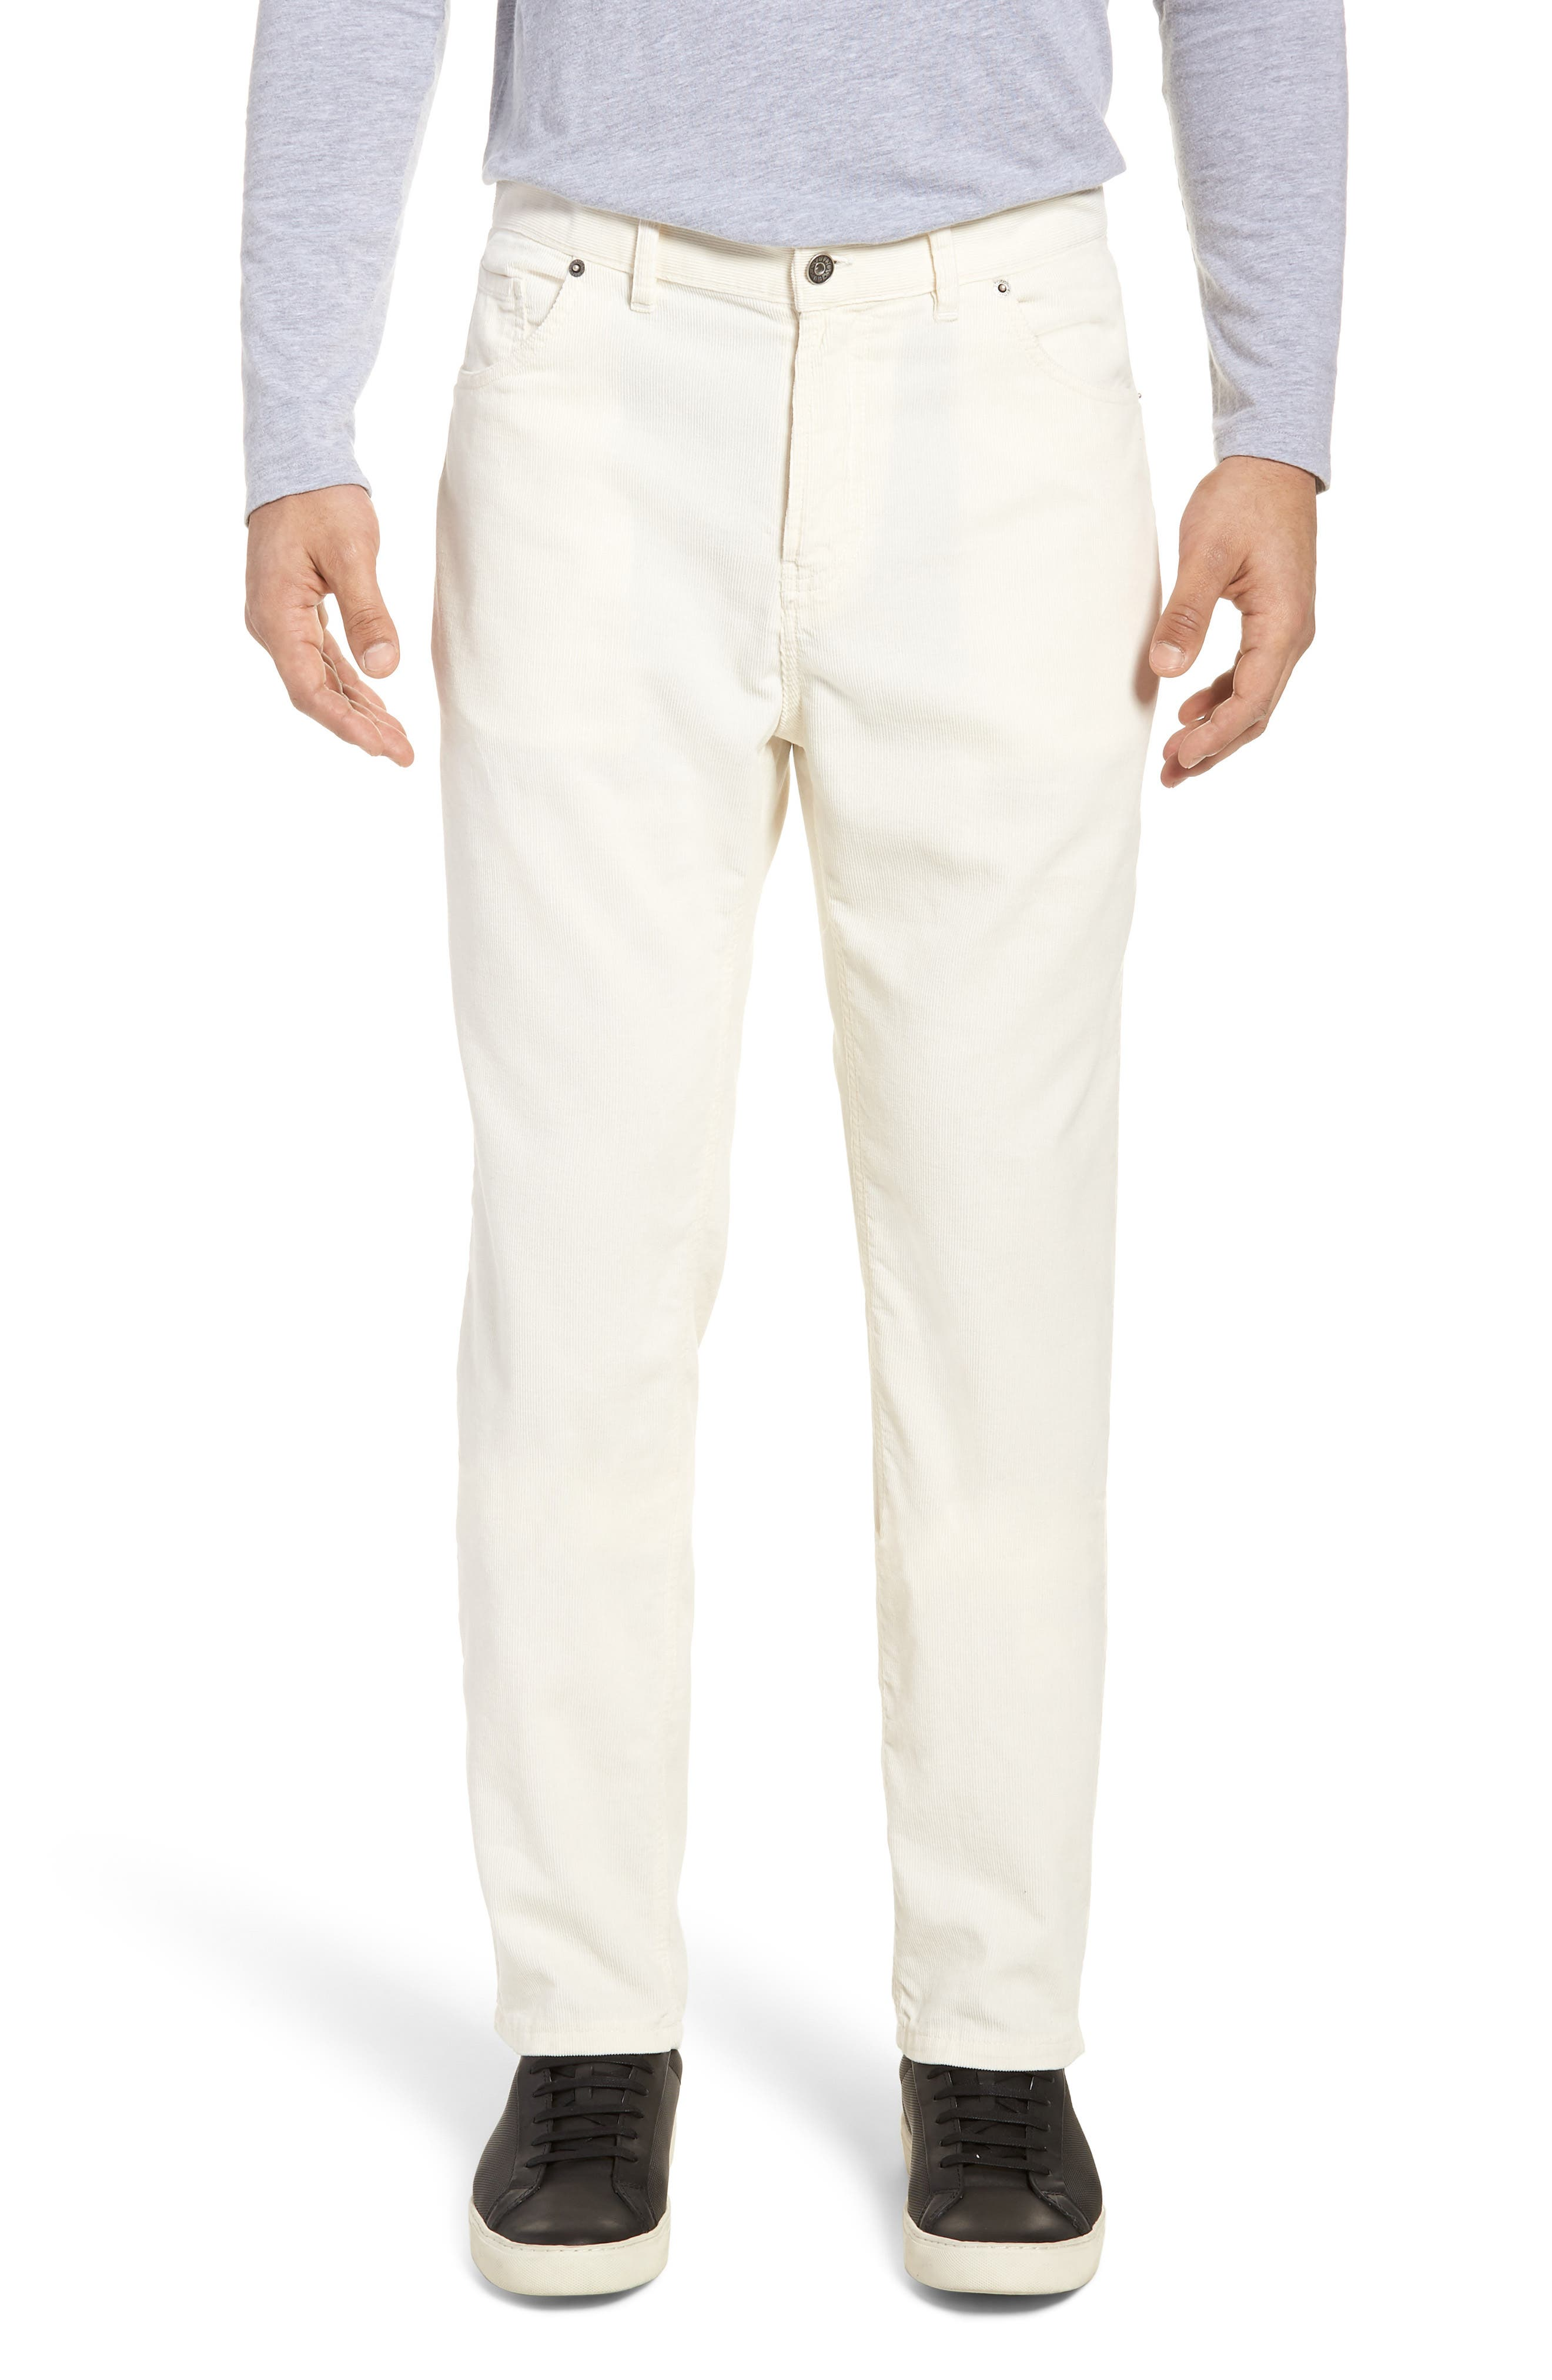 Q Cord Trousers,                         Main,                         color, Natural